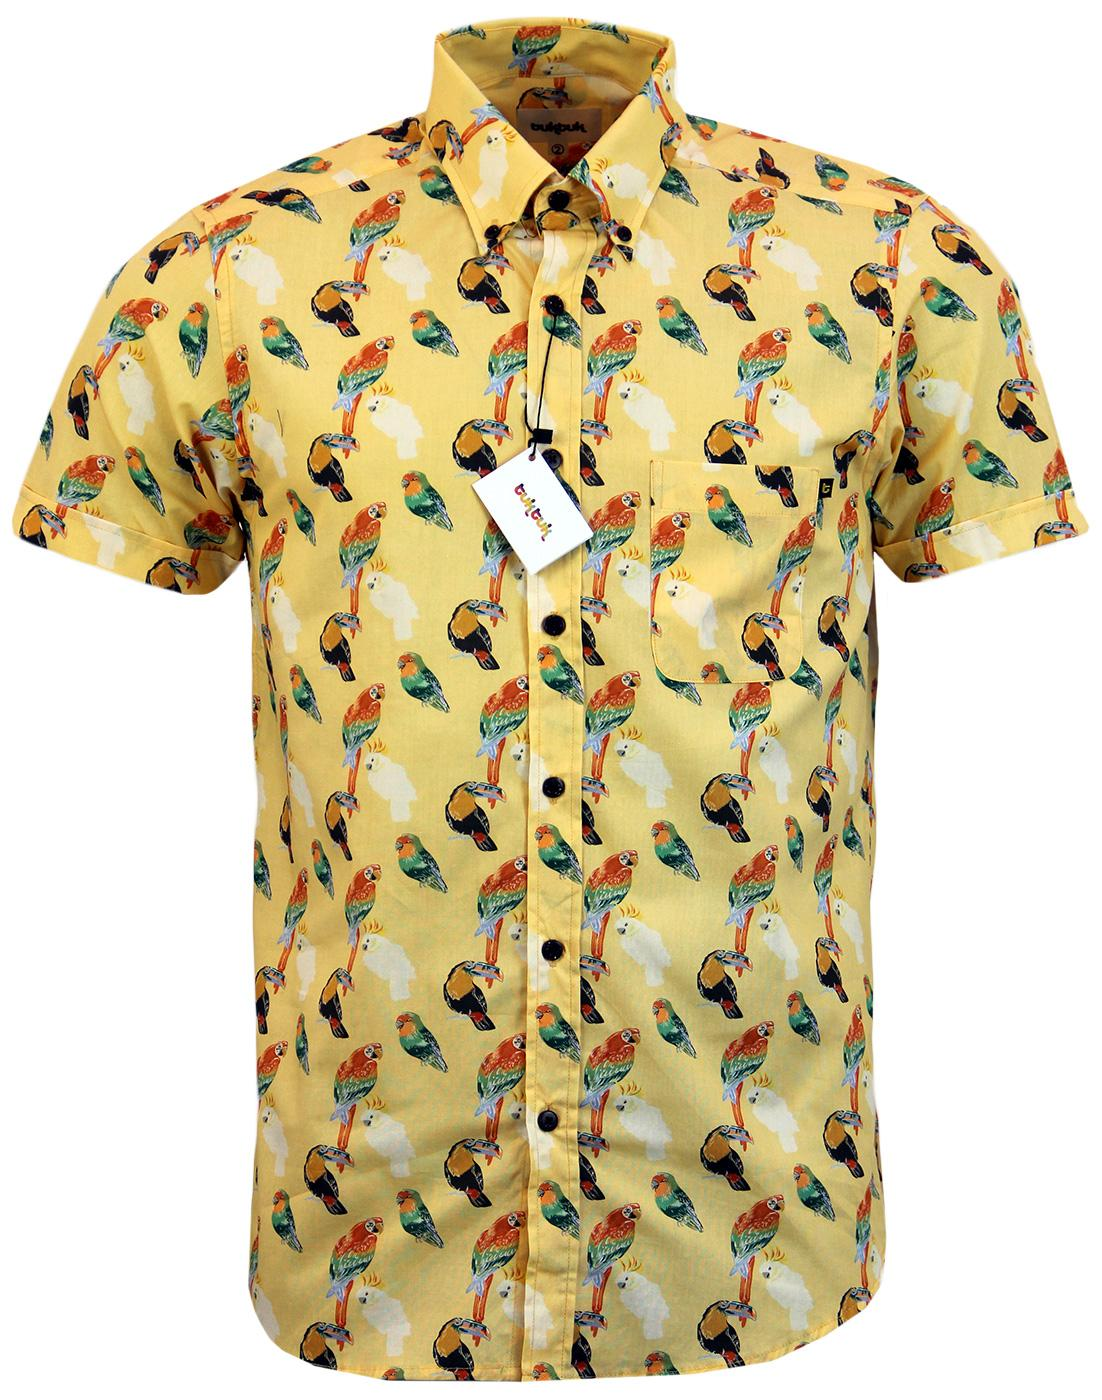 TUKTUK Retro Mod Button Down Parrot Sketch Shirt